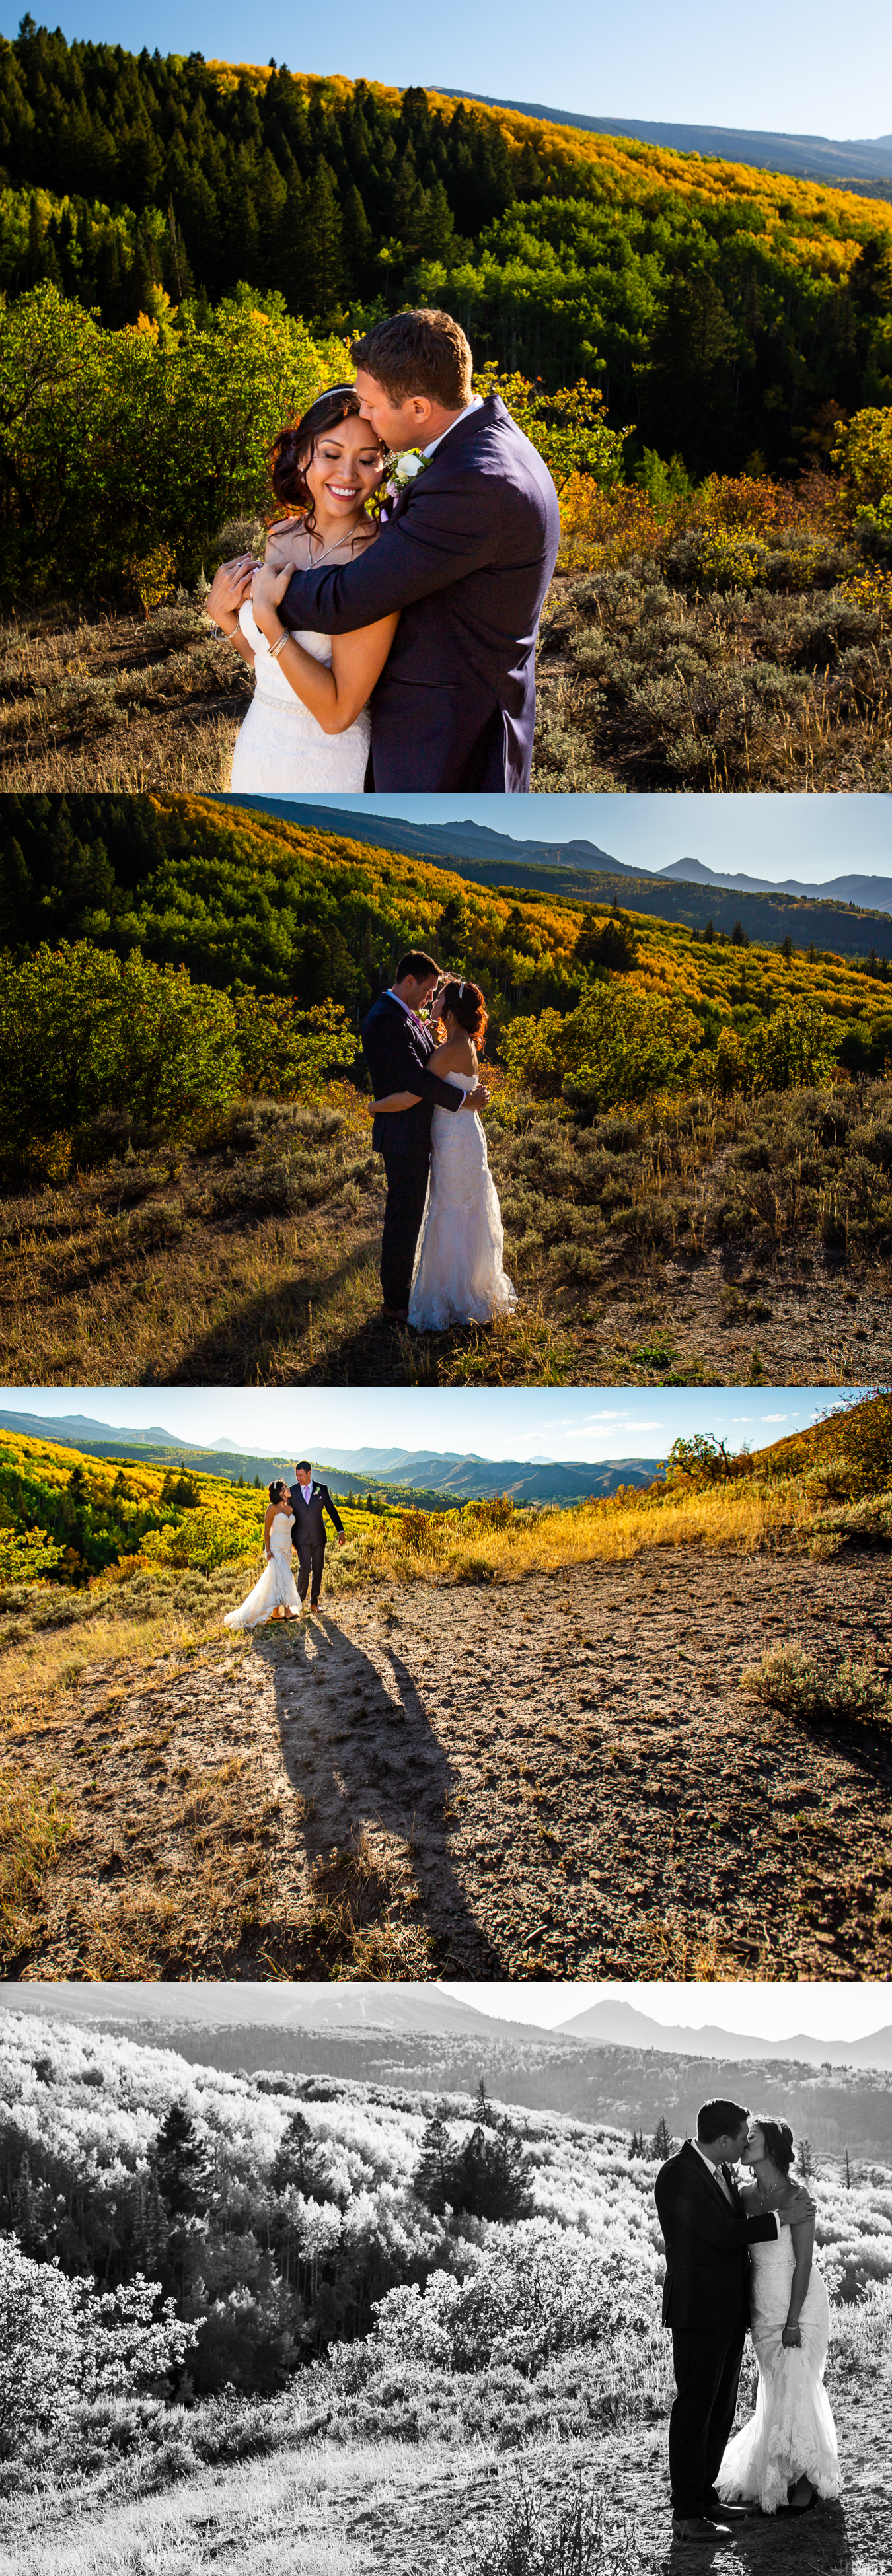 16BeautifulSeptemberAspenColoradoWeddingPhotos